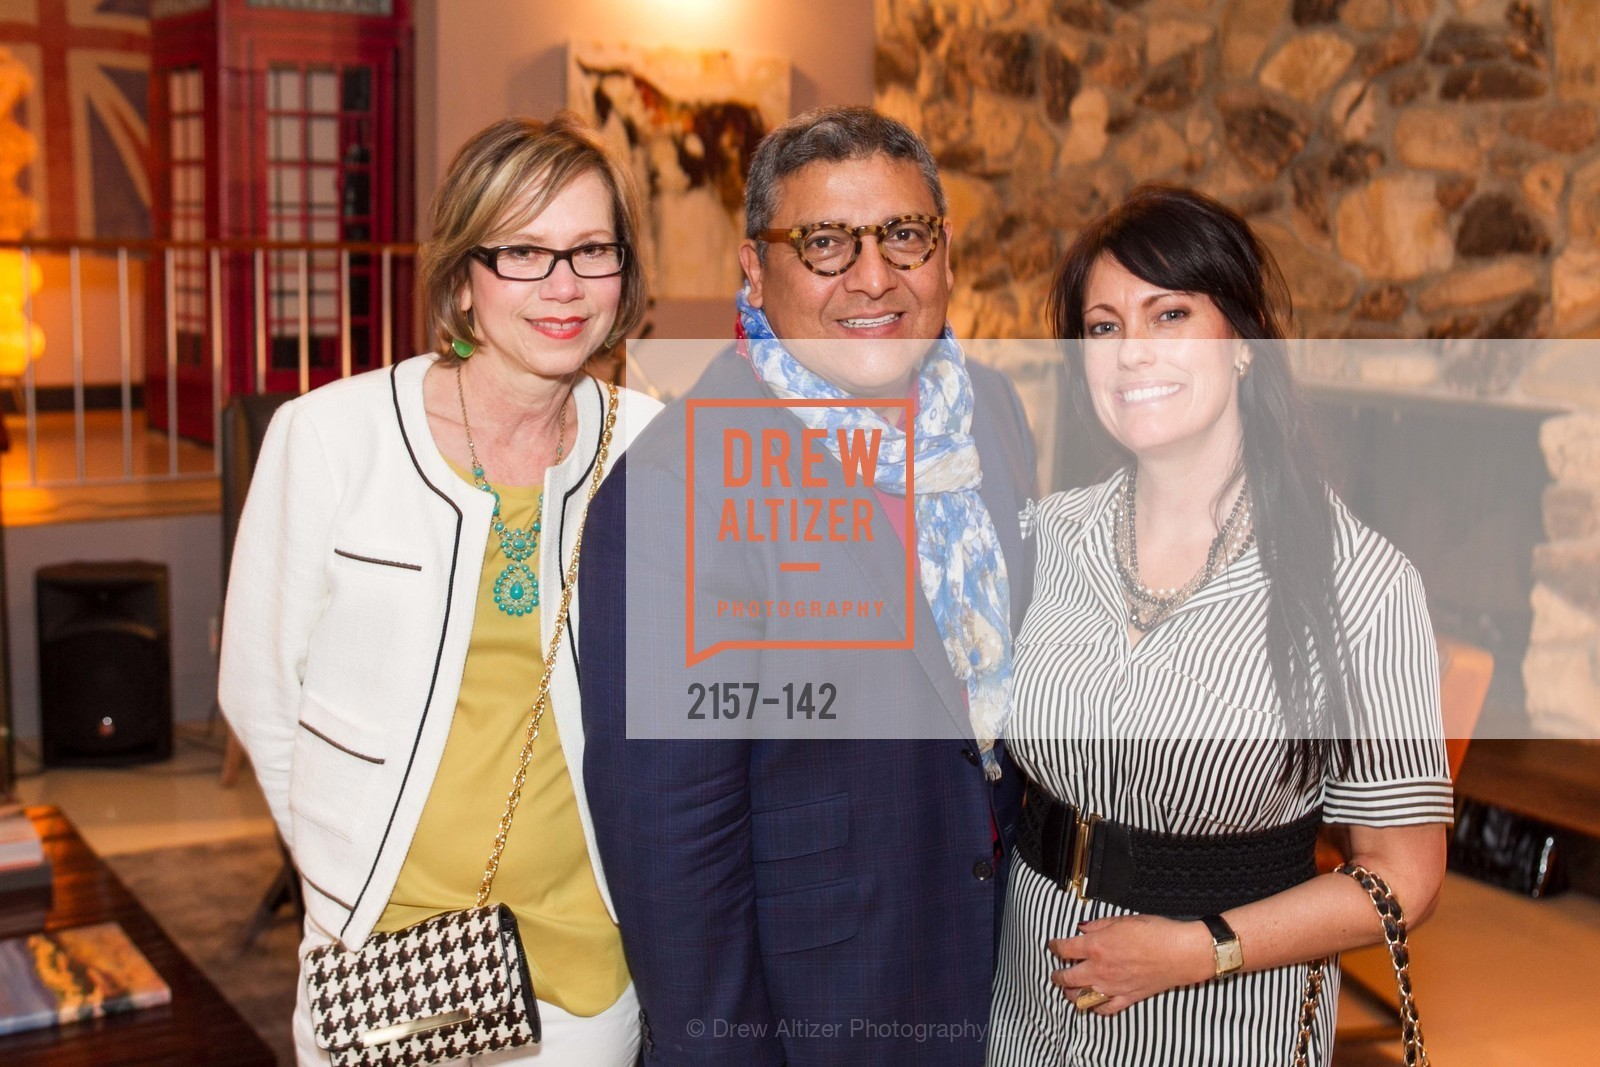 Anna Cesario, Riccardo Benavides, Shawna Barlow, THE MAN WITHIN book launch with Randolph Churchill, Private Residence, June 2nd, 2015,Drew Altizer, Drew Altizer Photography, full-service agency, private events, San Francisco photographer, photographer california